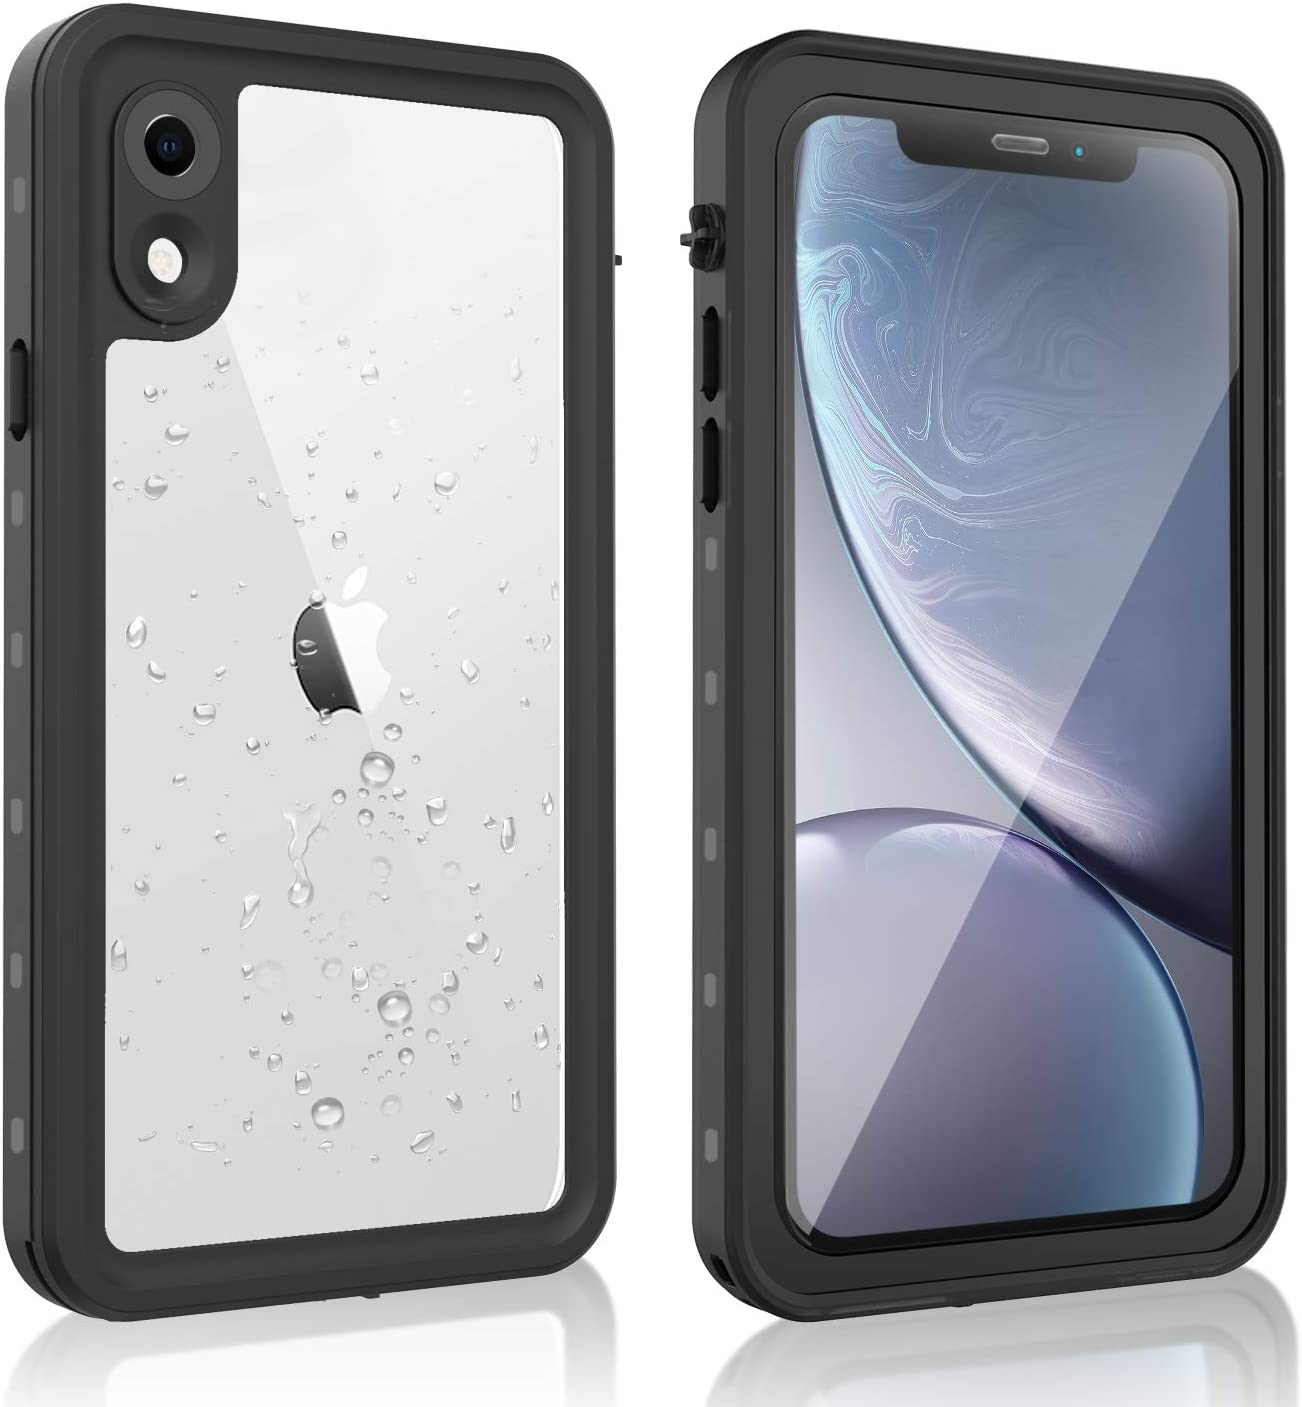 futurepost.co.nz Flip Case for iPhone XR Leather Cover Business ...